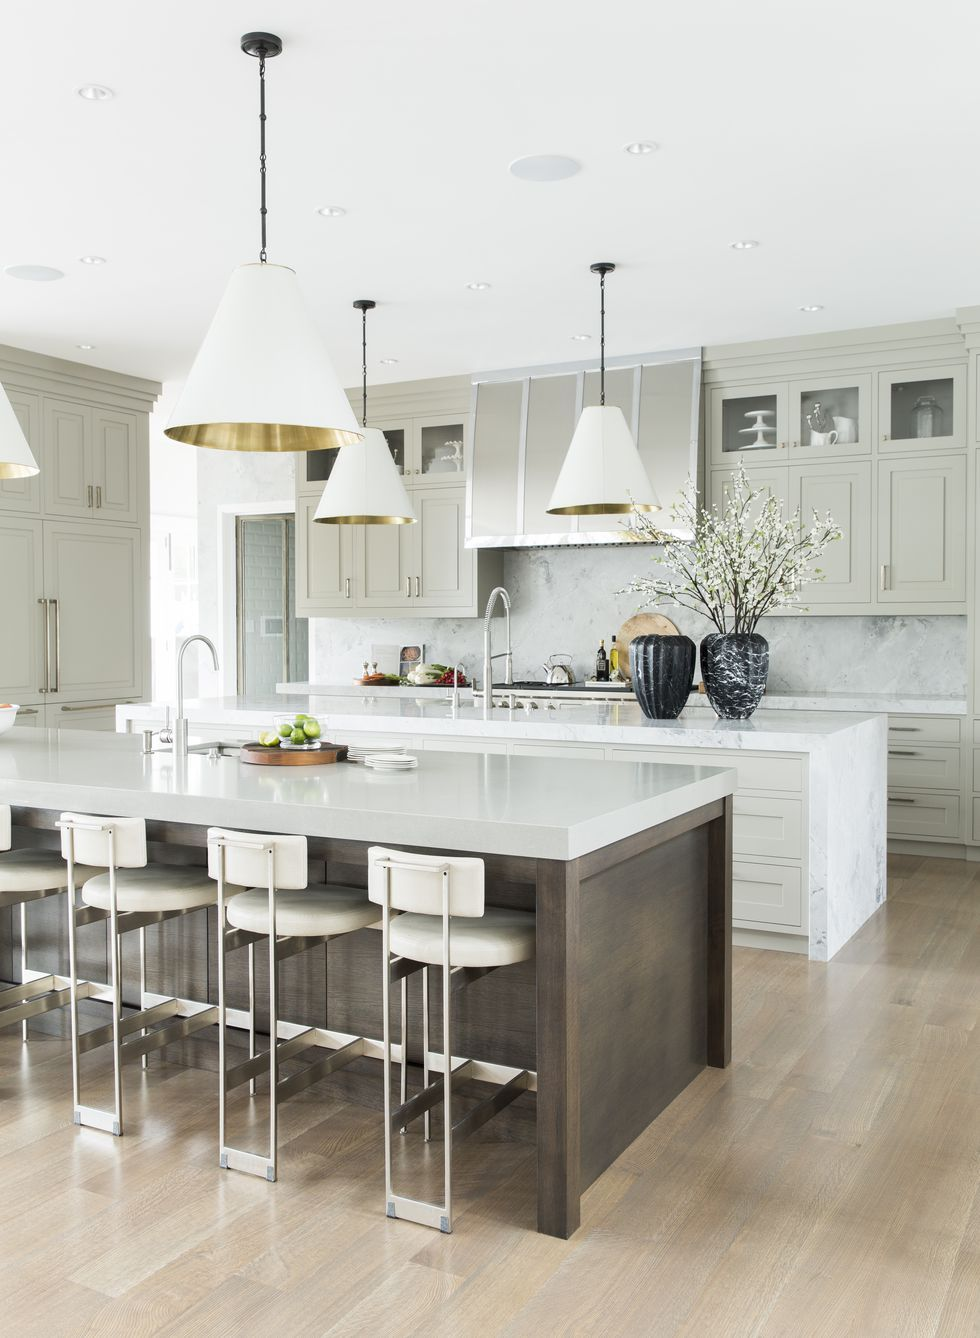 Kitchen Island Ideas 20 Rcfl Spider Web Co